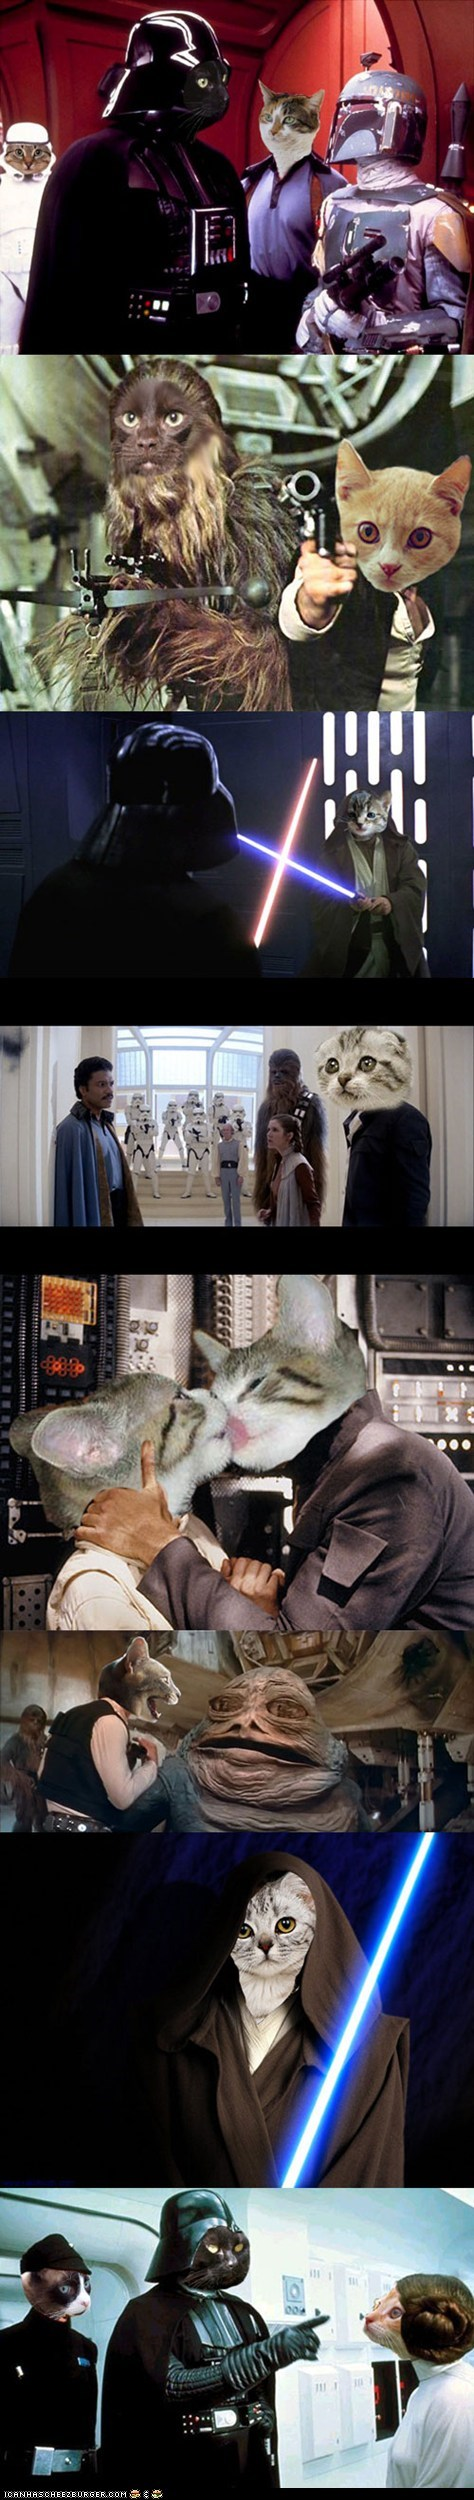 best of the week Cats movies multipanel photoshopped star wars - 6434566656